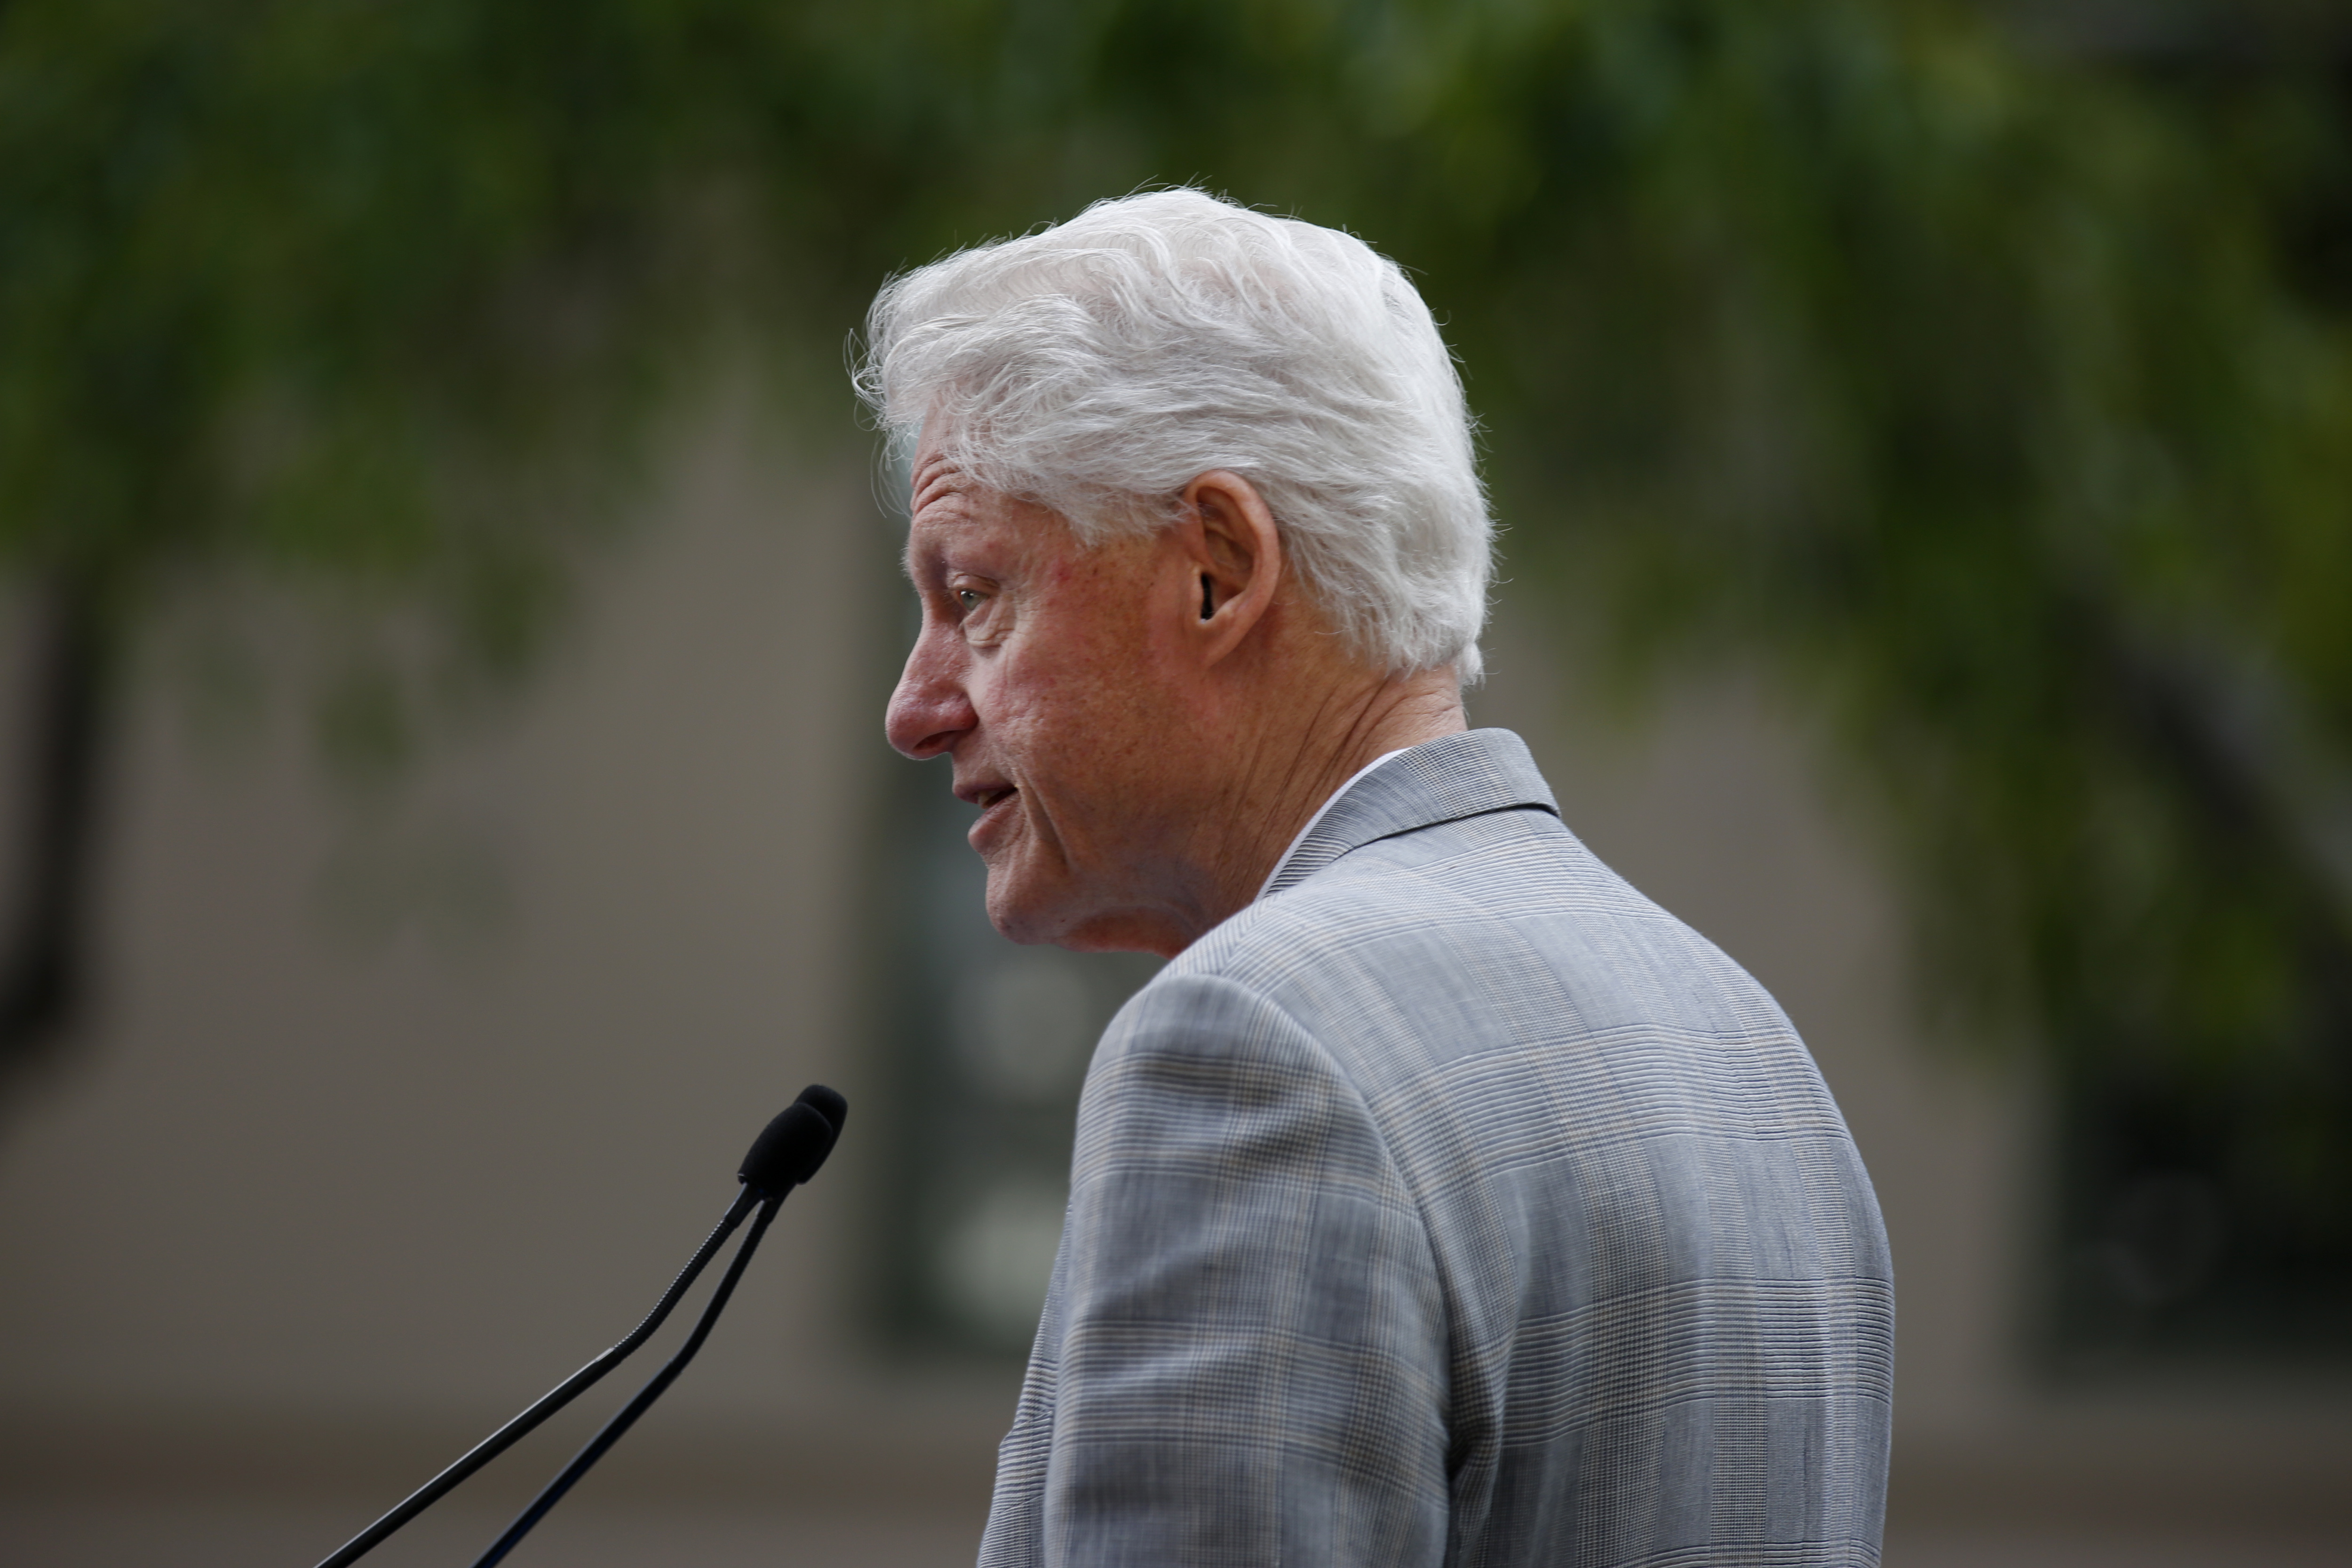 Former President Bill Clinton stumps for Democratic presidential candidate Hillary Clinton at the Los Angeles Trade - Technical College April 3, 2016 in Los Angeles, California.